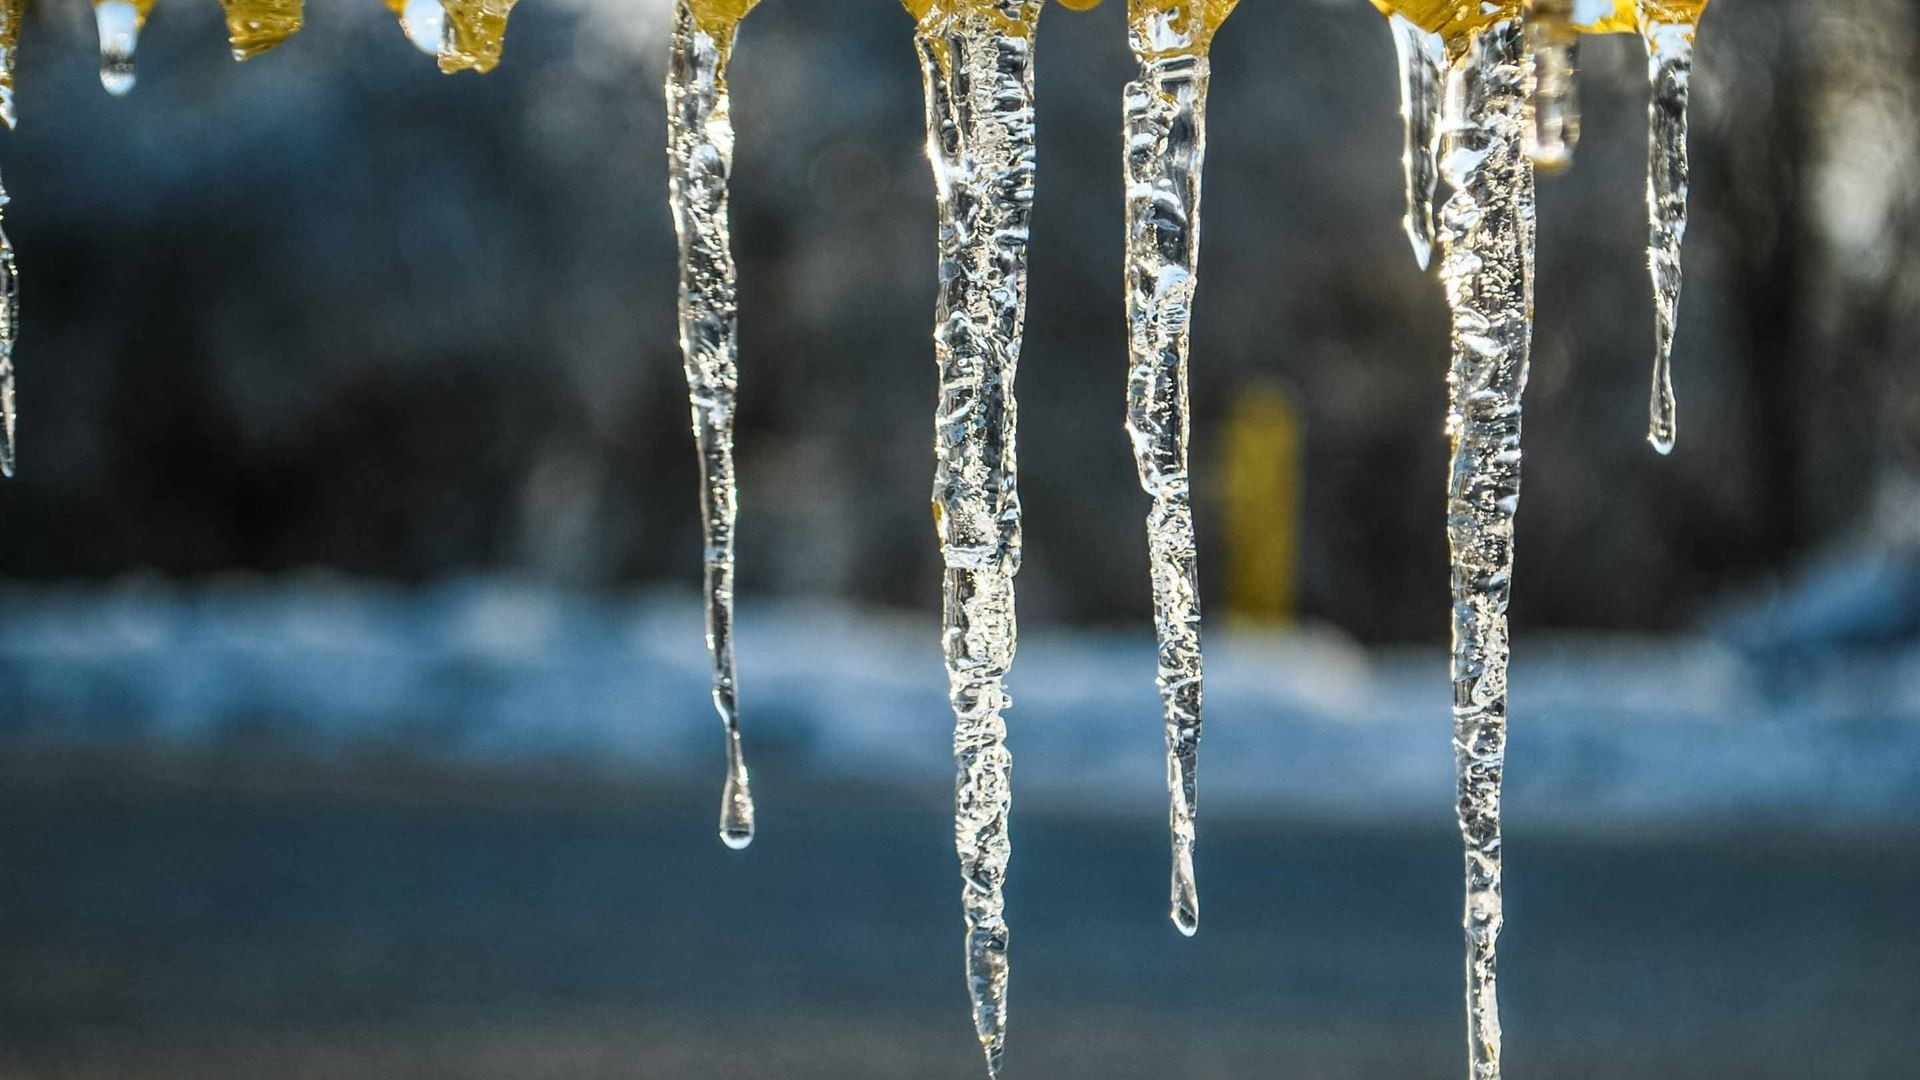 Icicles High Quality